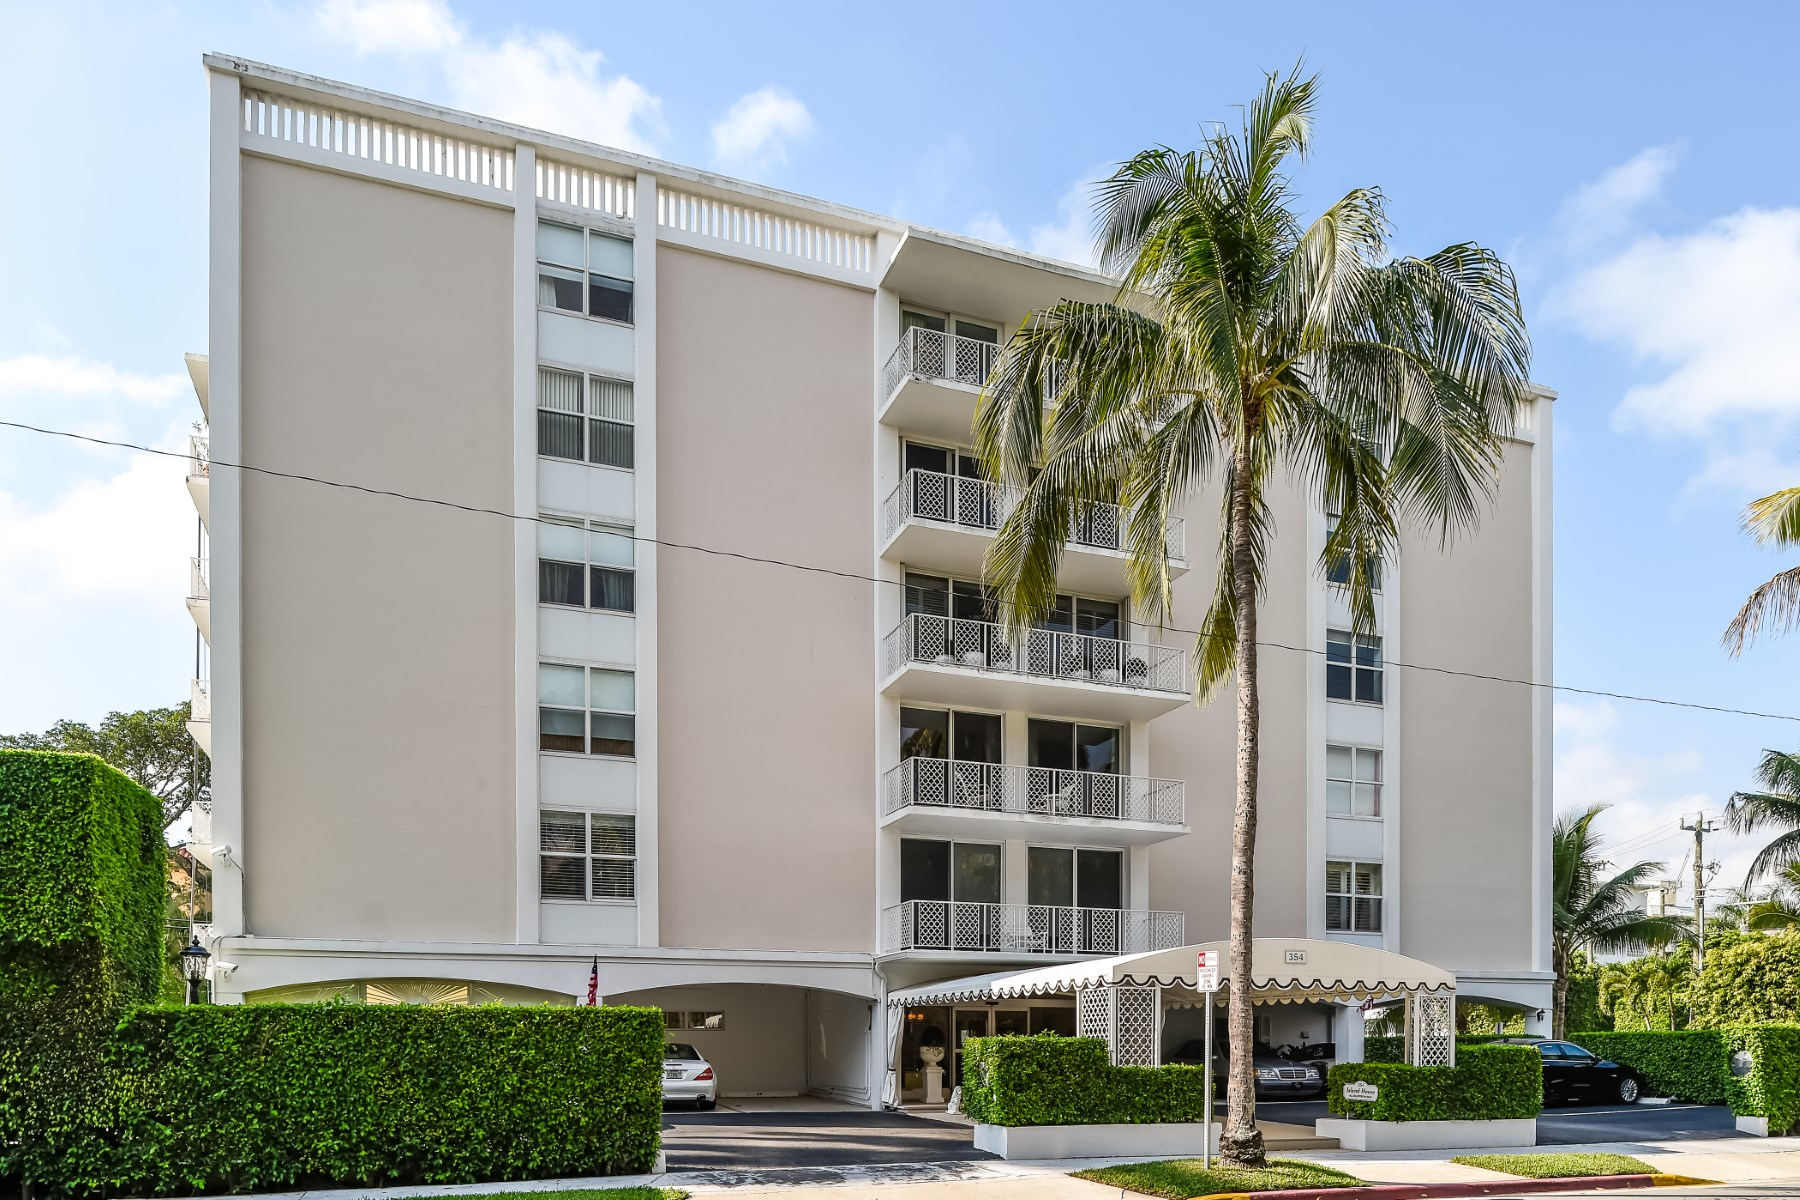 Condominium for Sale at Island House Lease 354 Chilean Ave Apt 2D Palm Beach, Florida, 33480 United States